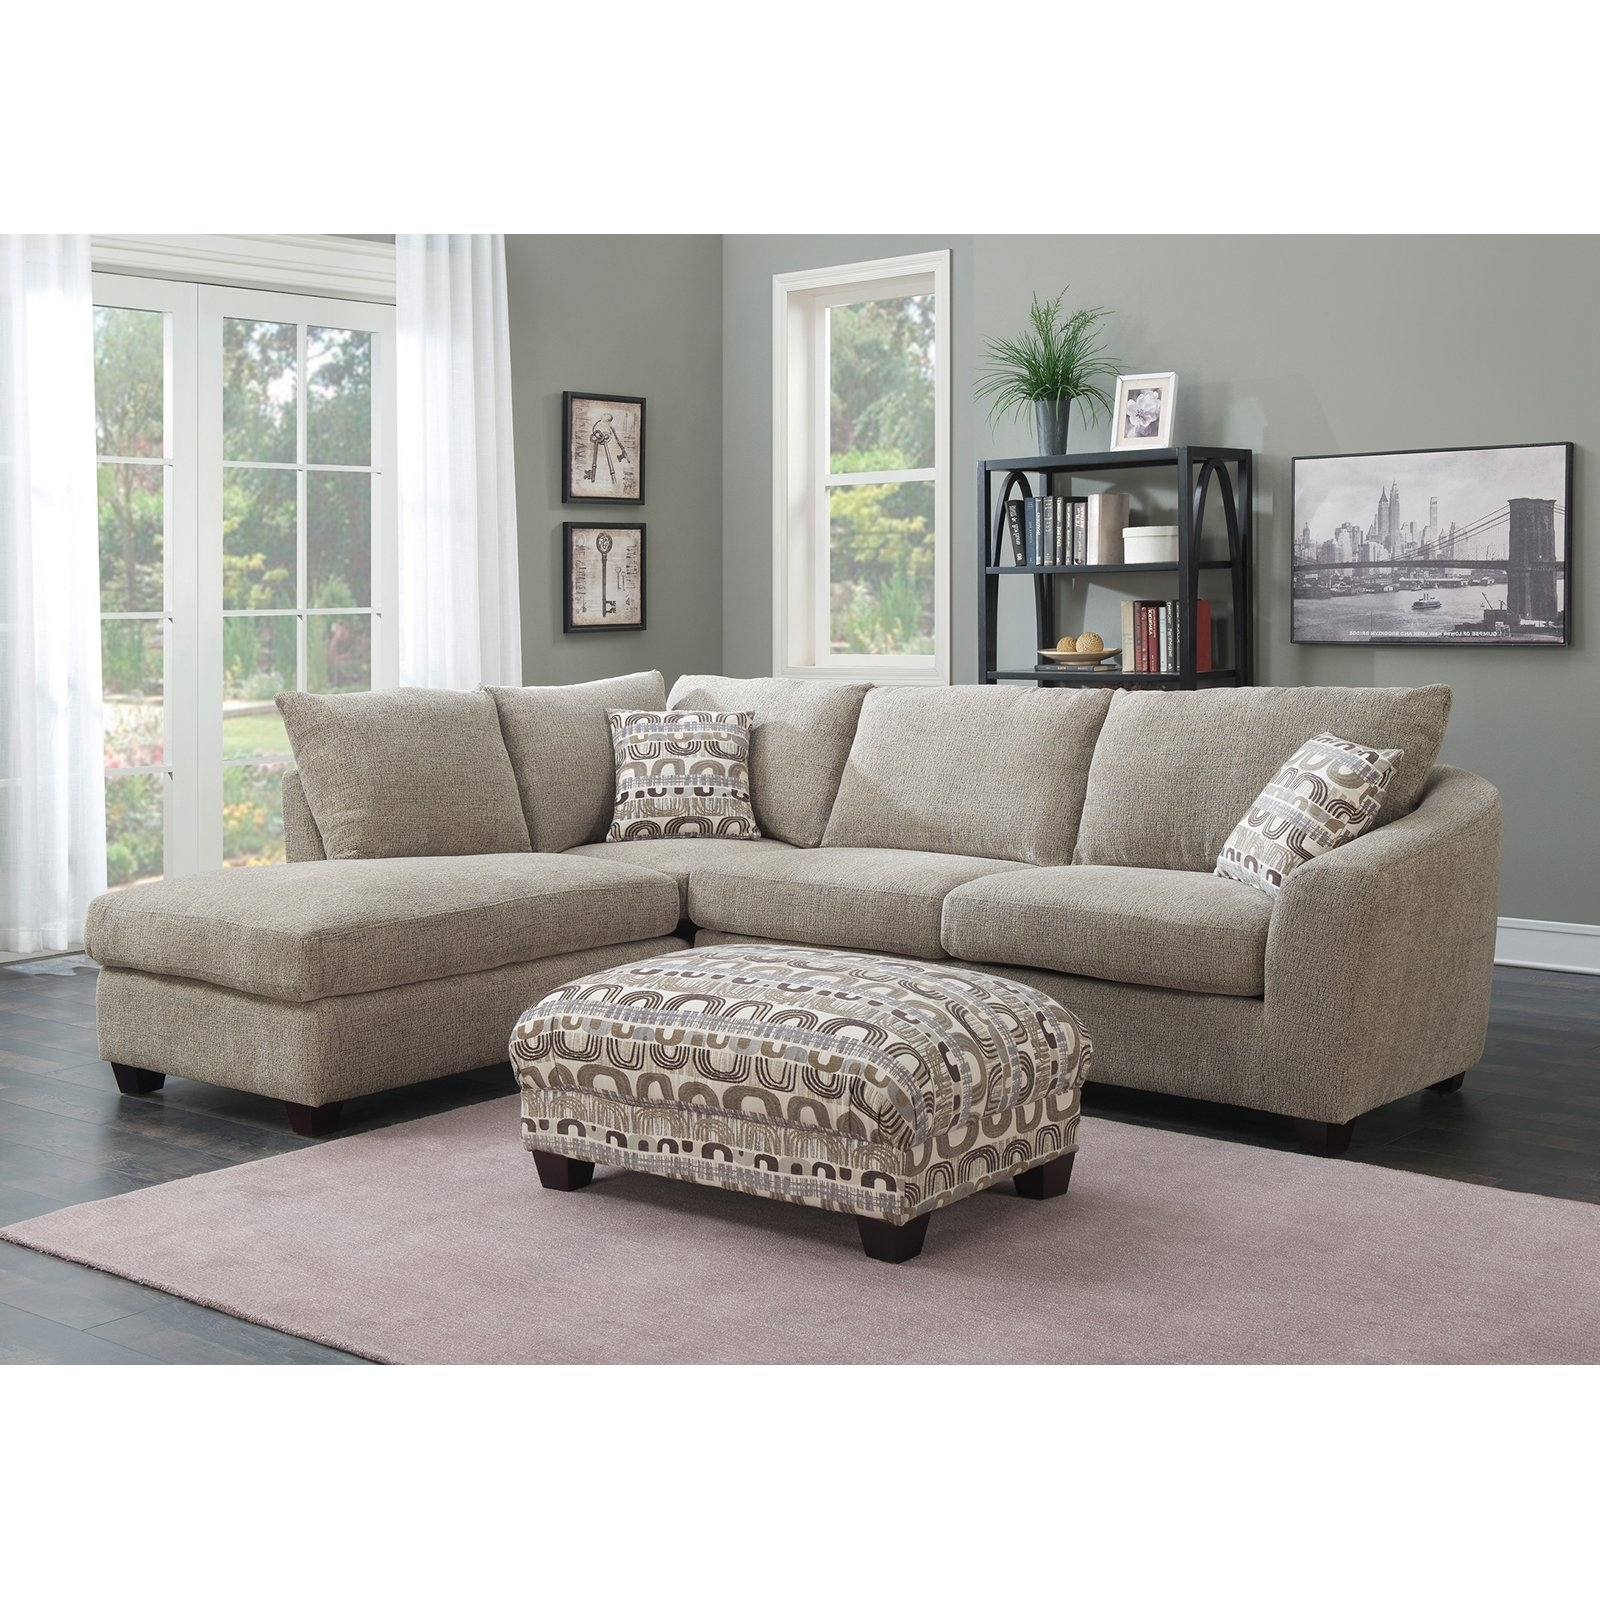 Emerald Home Urbana 2 Piece Sectional Sofa With Chaise – Walmart In 2018 Sectional Sofas With 2 Chaises (Gallery 13 of 20)